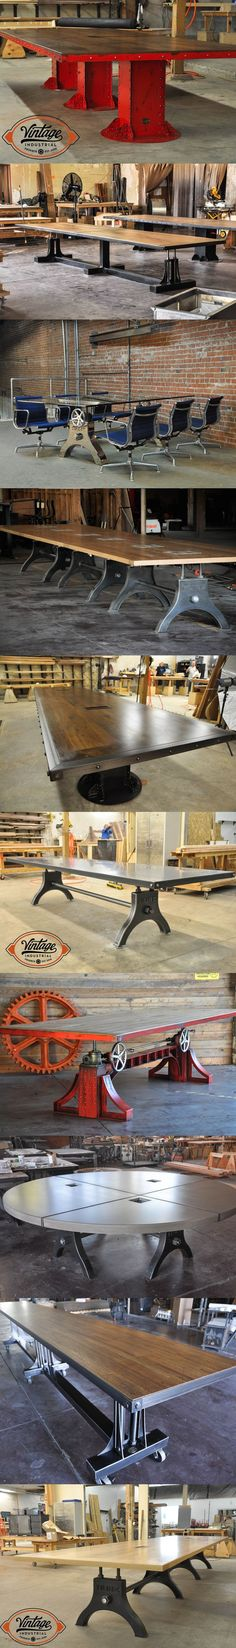 Vintage Industrial offers several conference table options that are all customizable with size, finish, color, dataport, and top material. We build to order in Phoenix! These also make a great community table.: